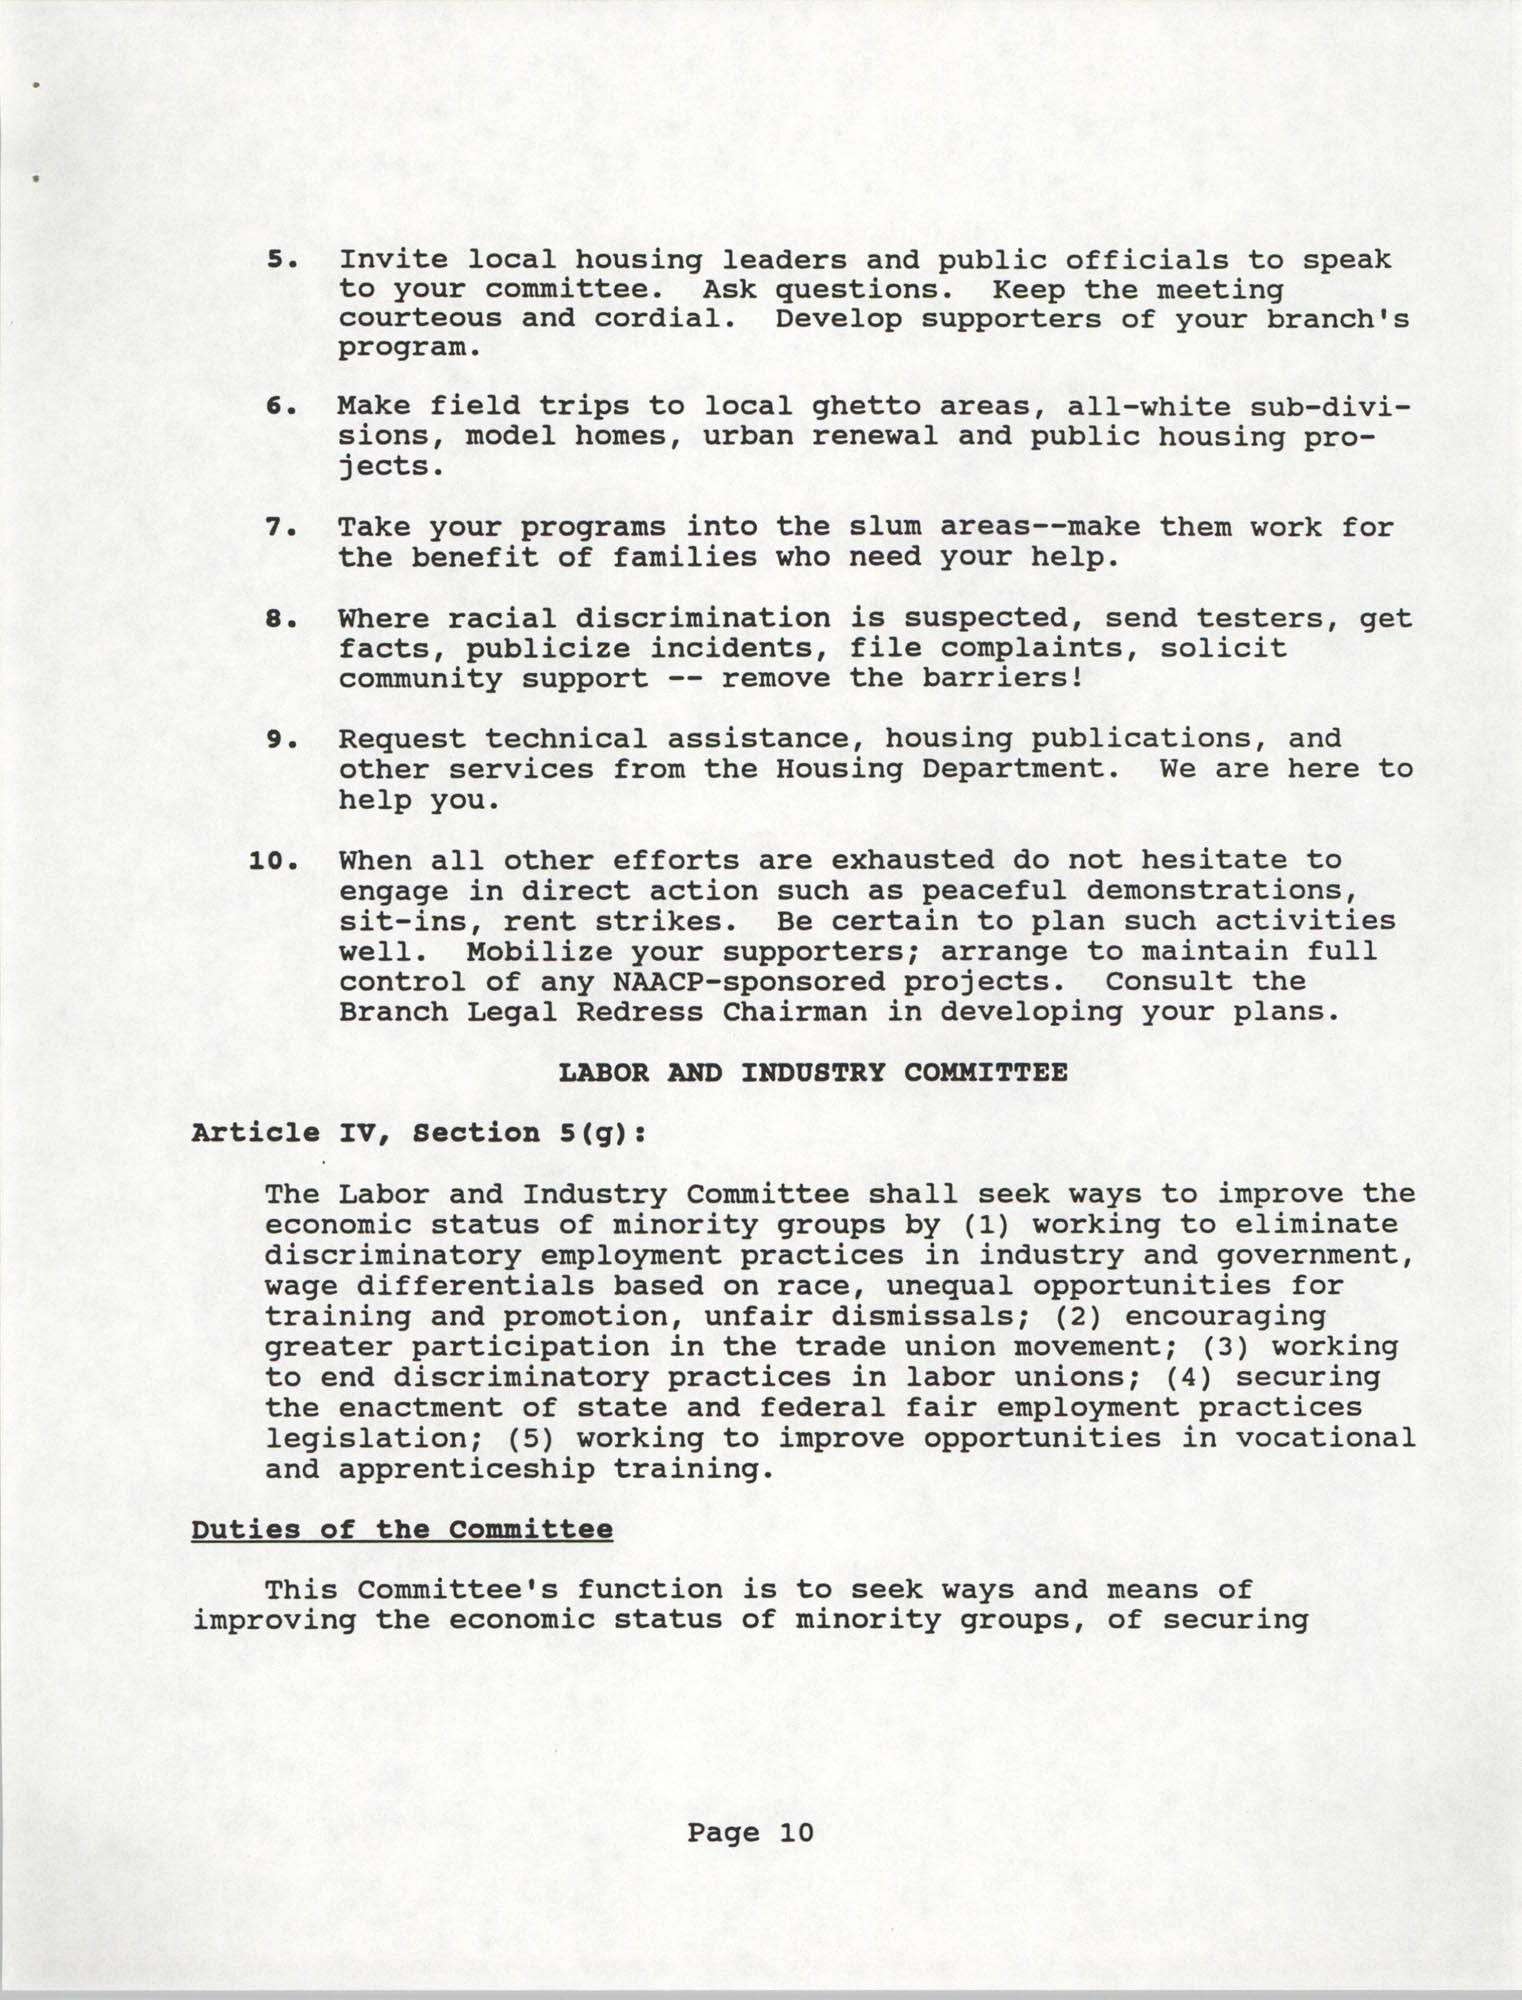 Branch Standing Committees Handbook for the South Carolina Conference of Branches for the NAACP, Page 10